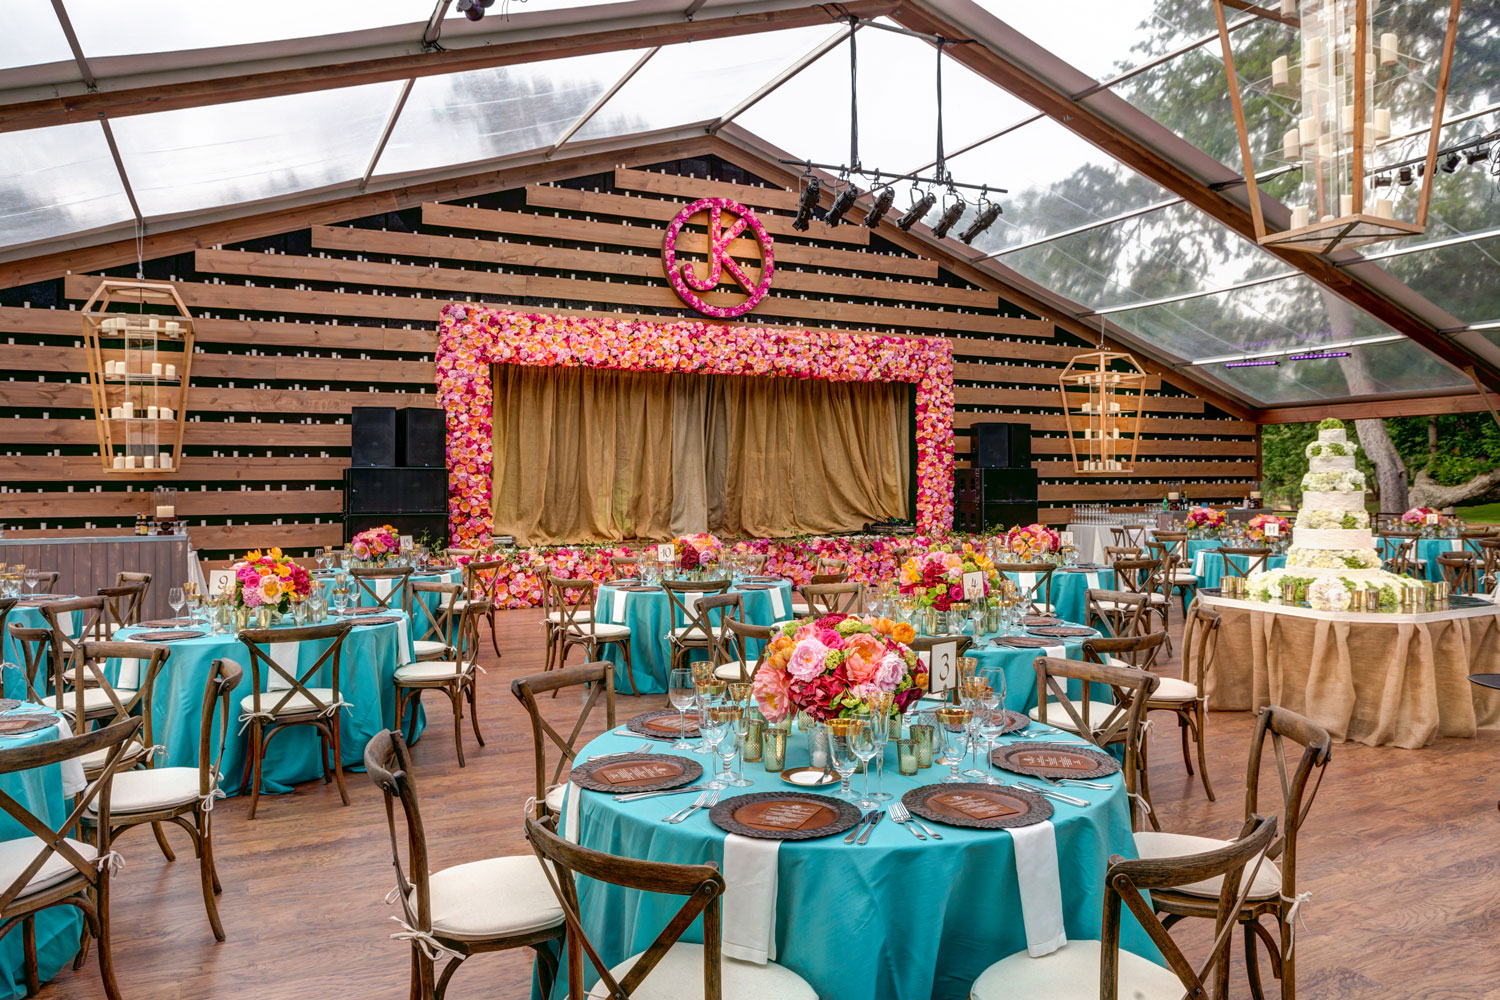 Wedding decor for custom built reception space at ranch in texas